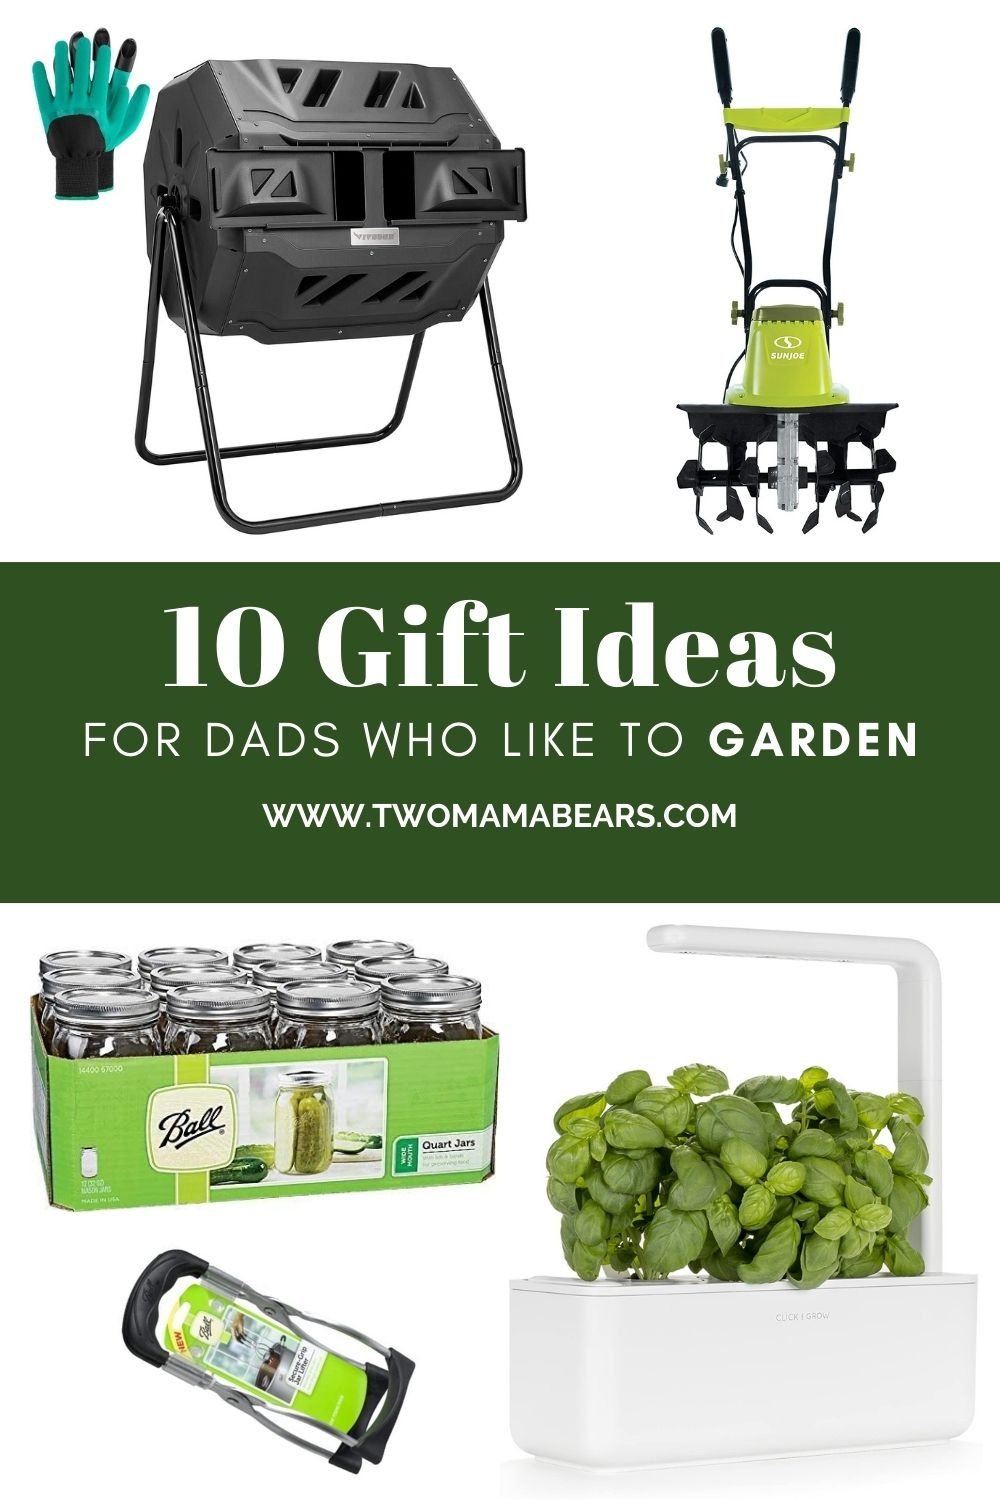 Gift ideas for dads who like to garden